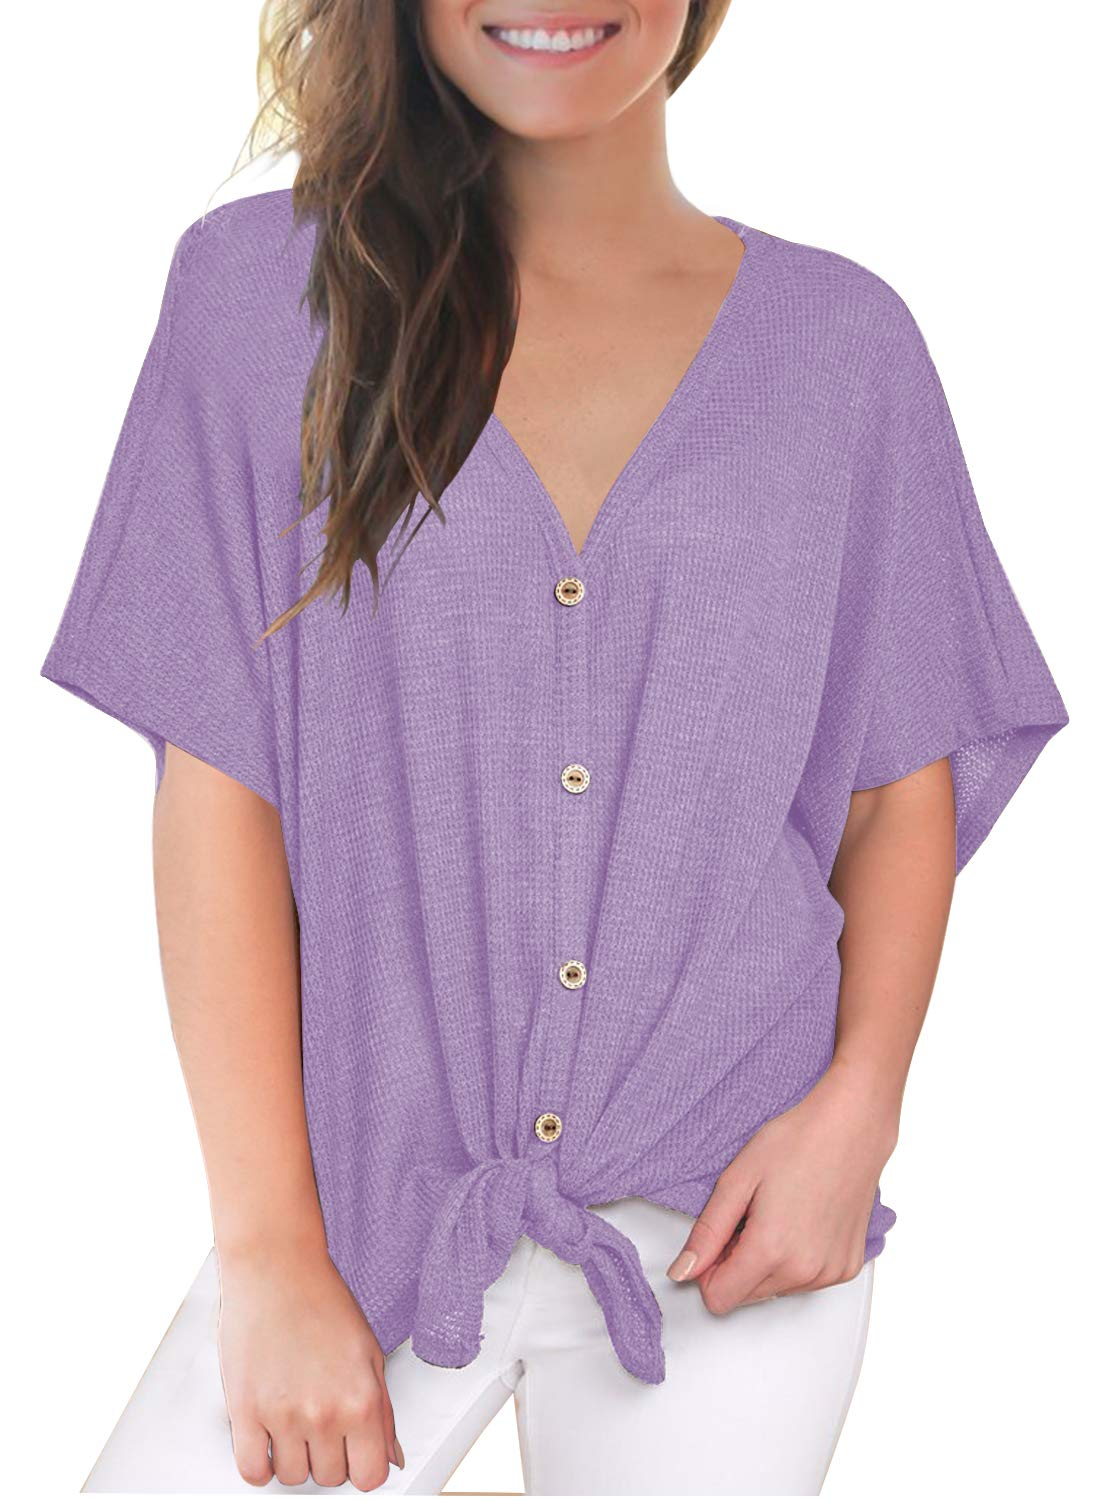 MIHOLL Henley Shirts for Women Short Sleeve V Neck Button Down Tie Front Knot Loose Tops (X-Large, Light Purple)